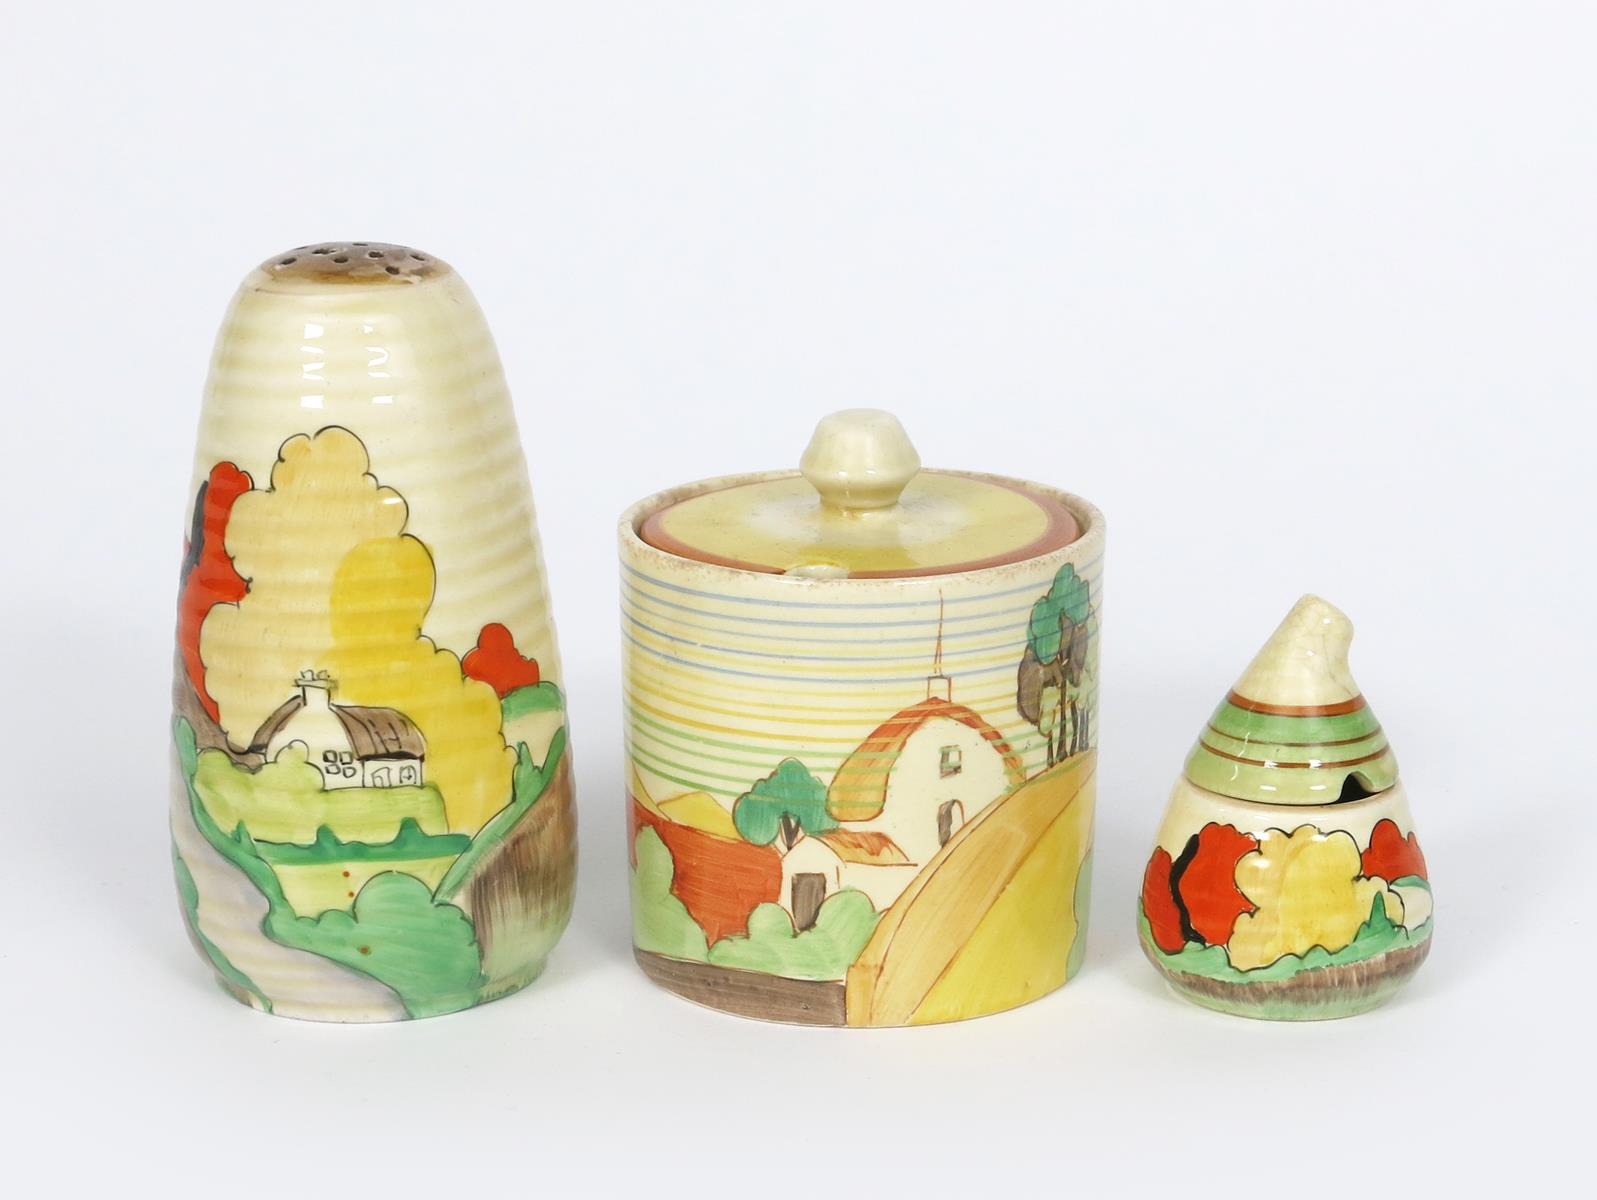 'Brookfields' a Clarice Cliff Lynton sugar sifter, painted in colours, and a Brookfields Cylindrical